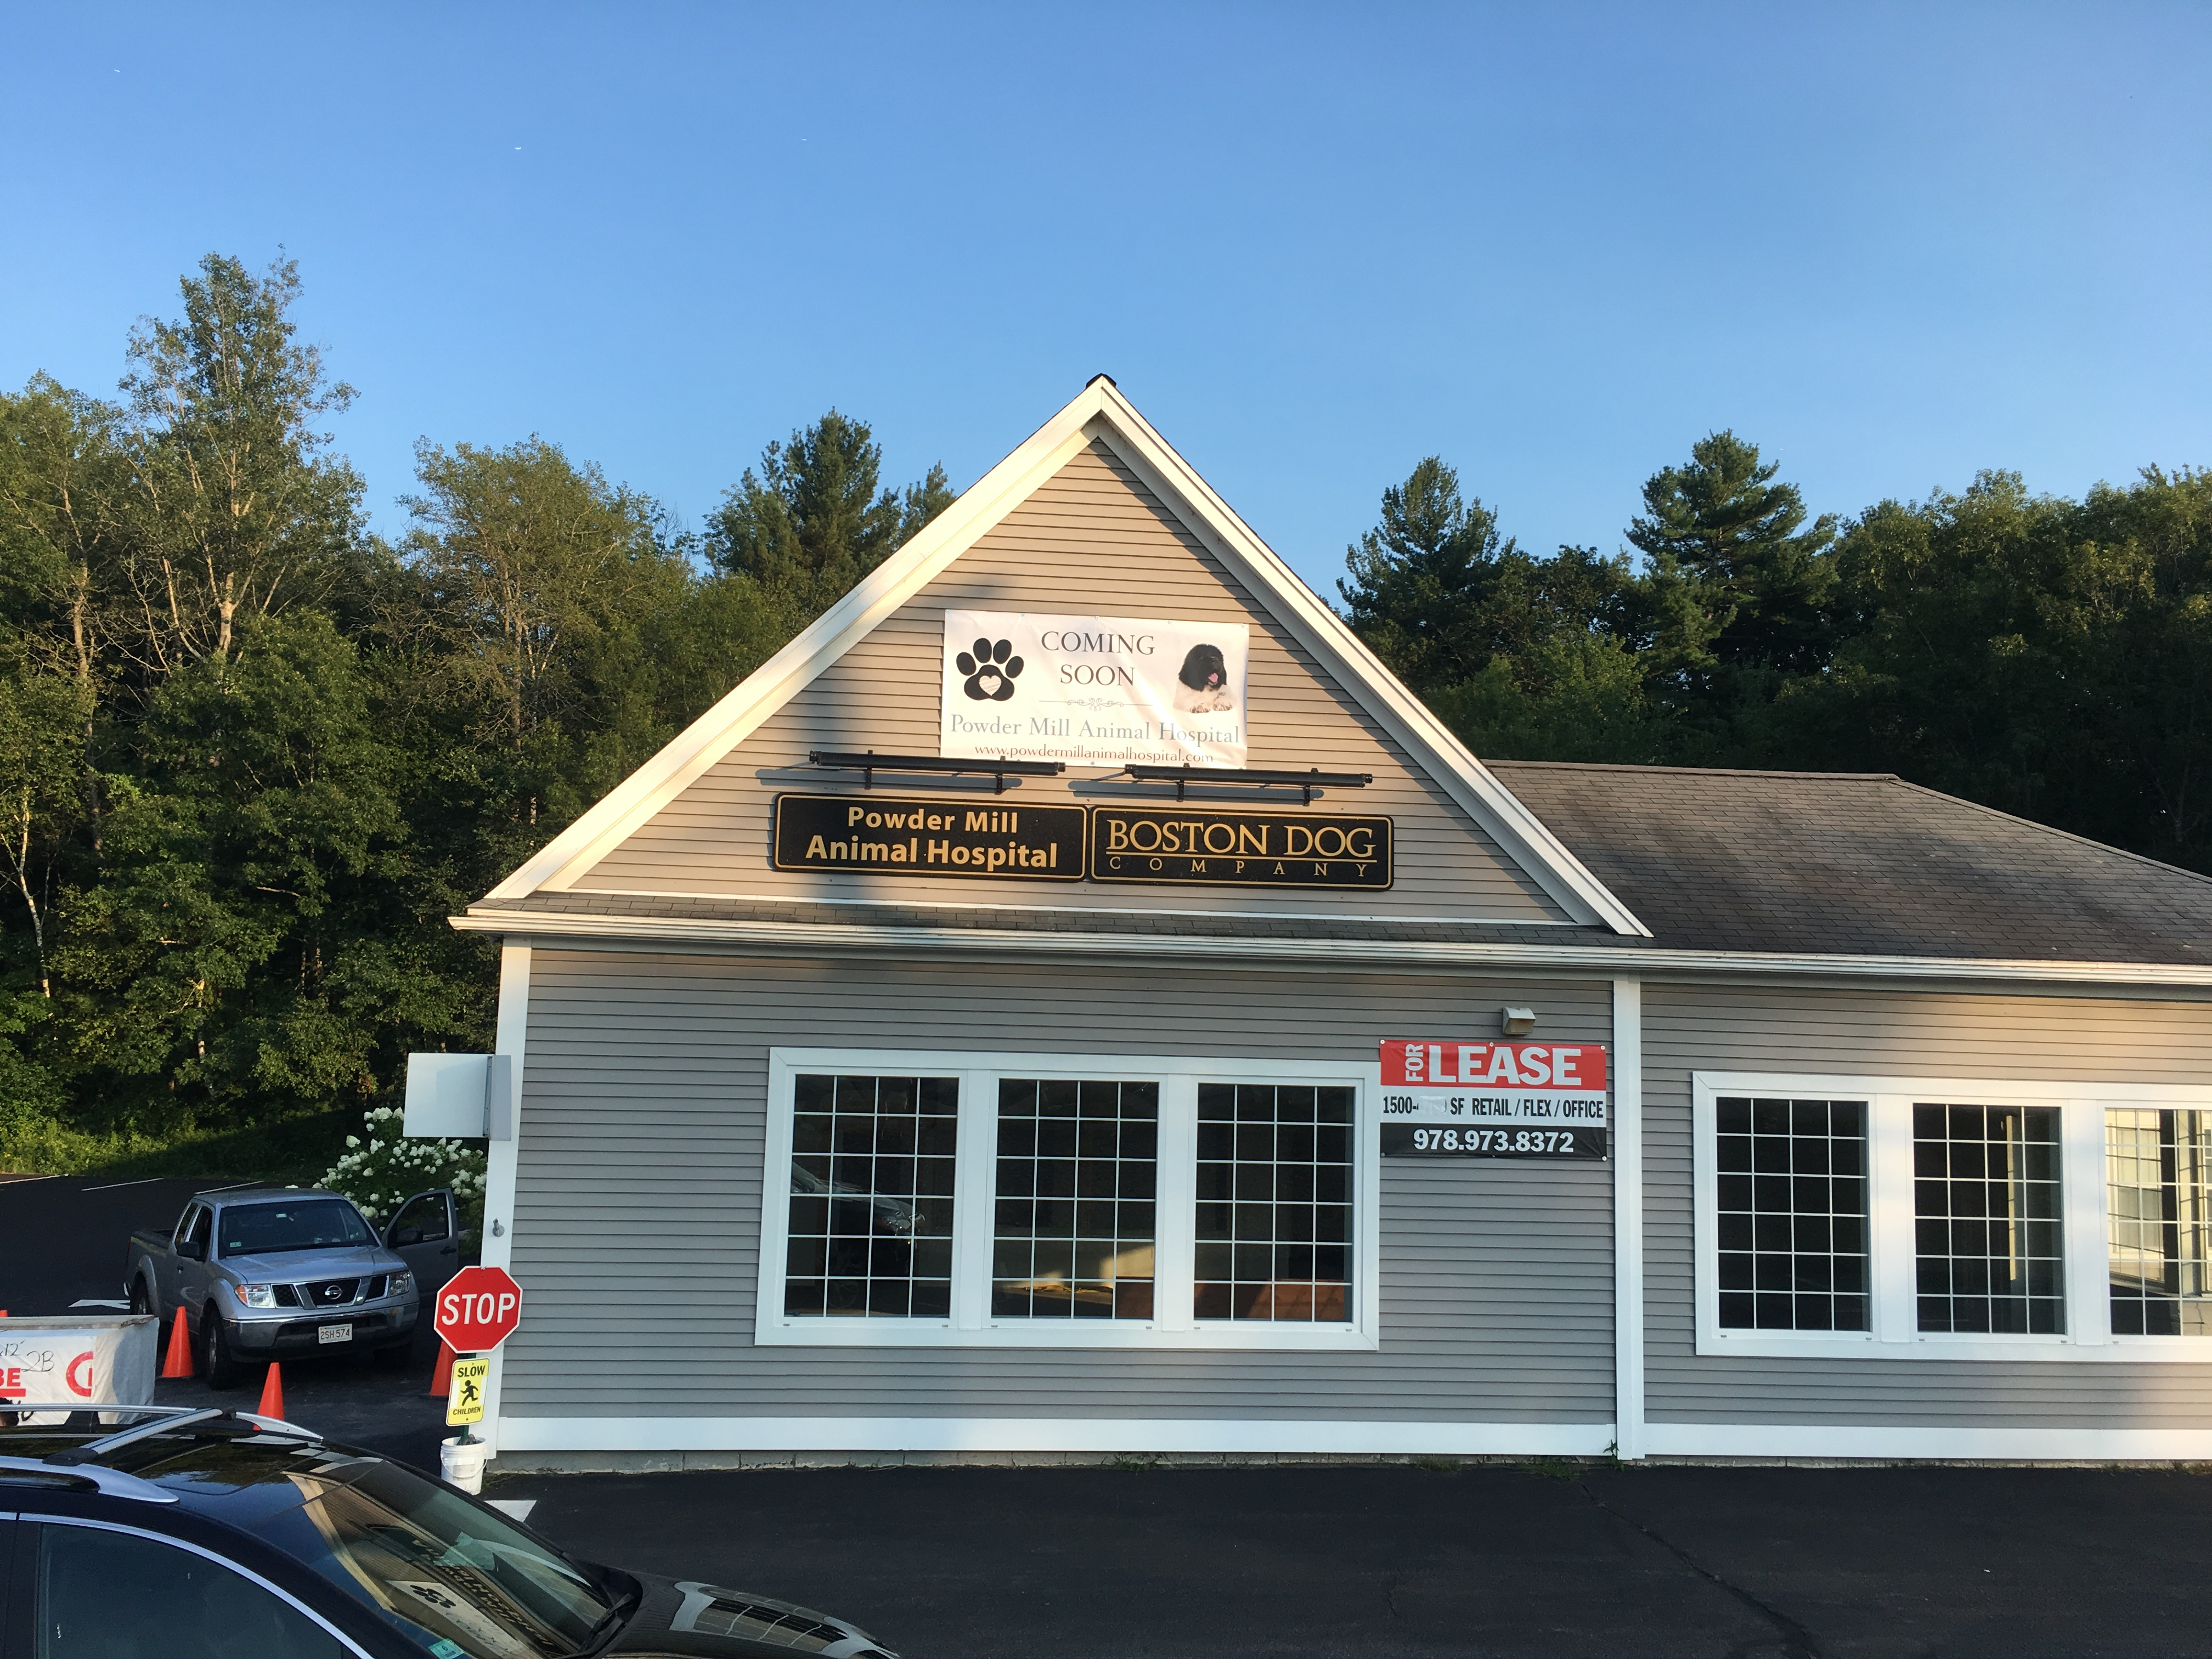 Powder Mill Animal Hospital Coming Soon to Acton and West Concord MA